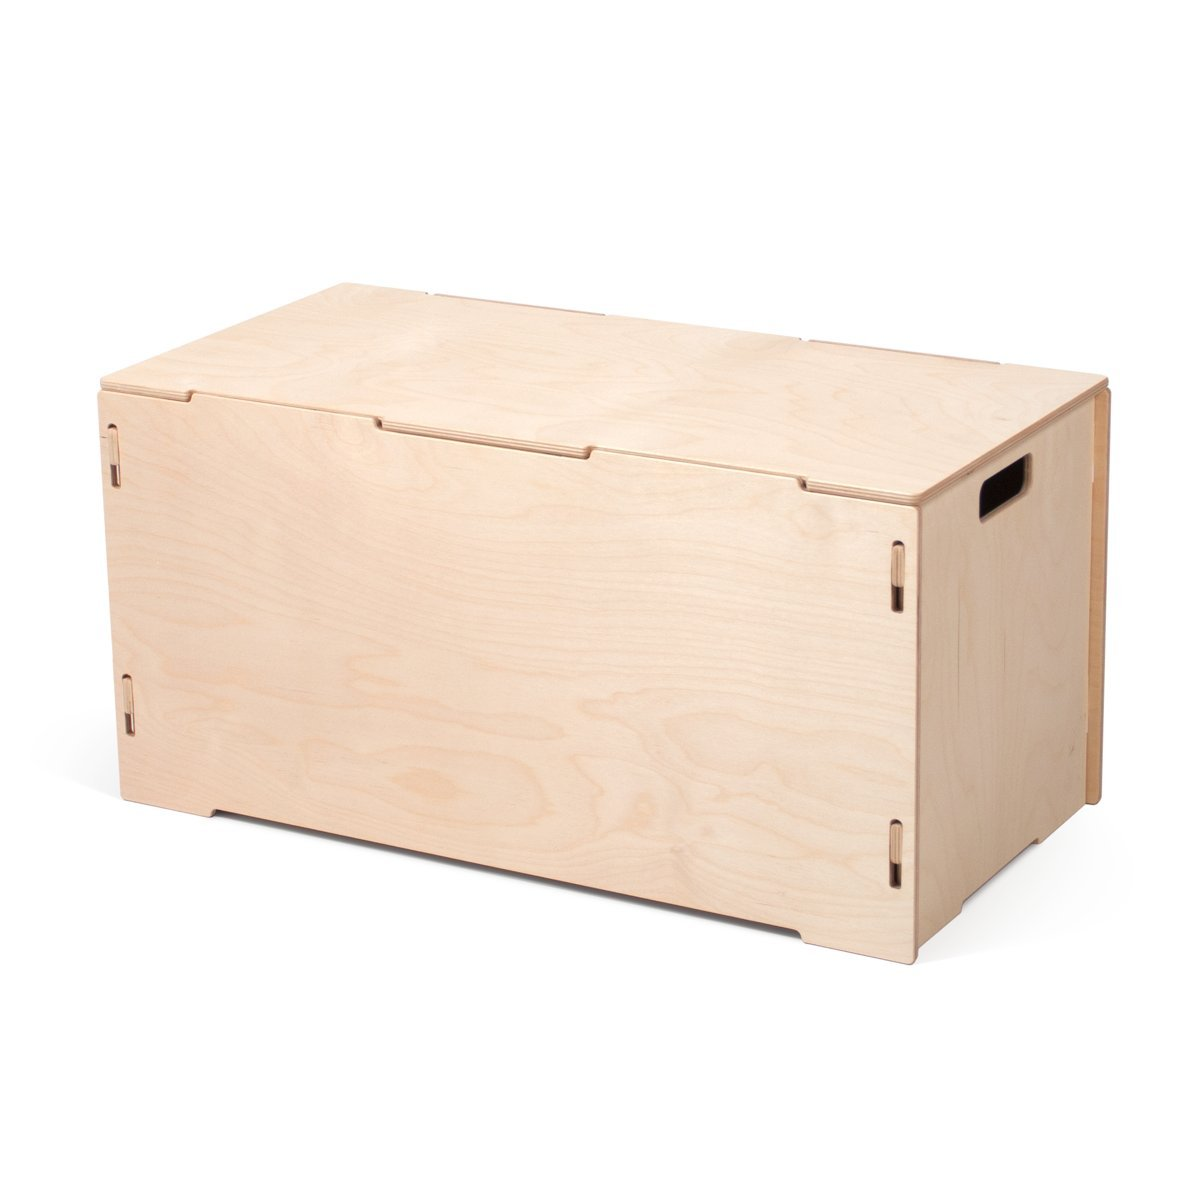 Stacking Crates Wooden Storage Tote Set (One Tote, One Lid) CR_TT1-RAW B01MZC0ZPK Wooden Storage Tote Set (One Tote, One Lid) Raw Baltic Birch Raw Baltic Birch Wooden Storage Tote Set (One Tote, One Lid)